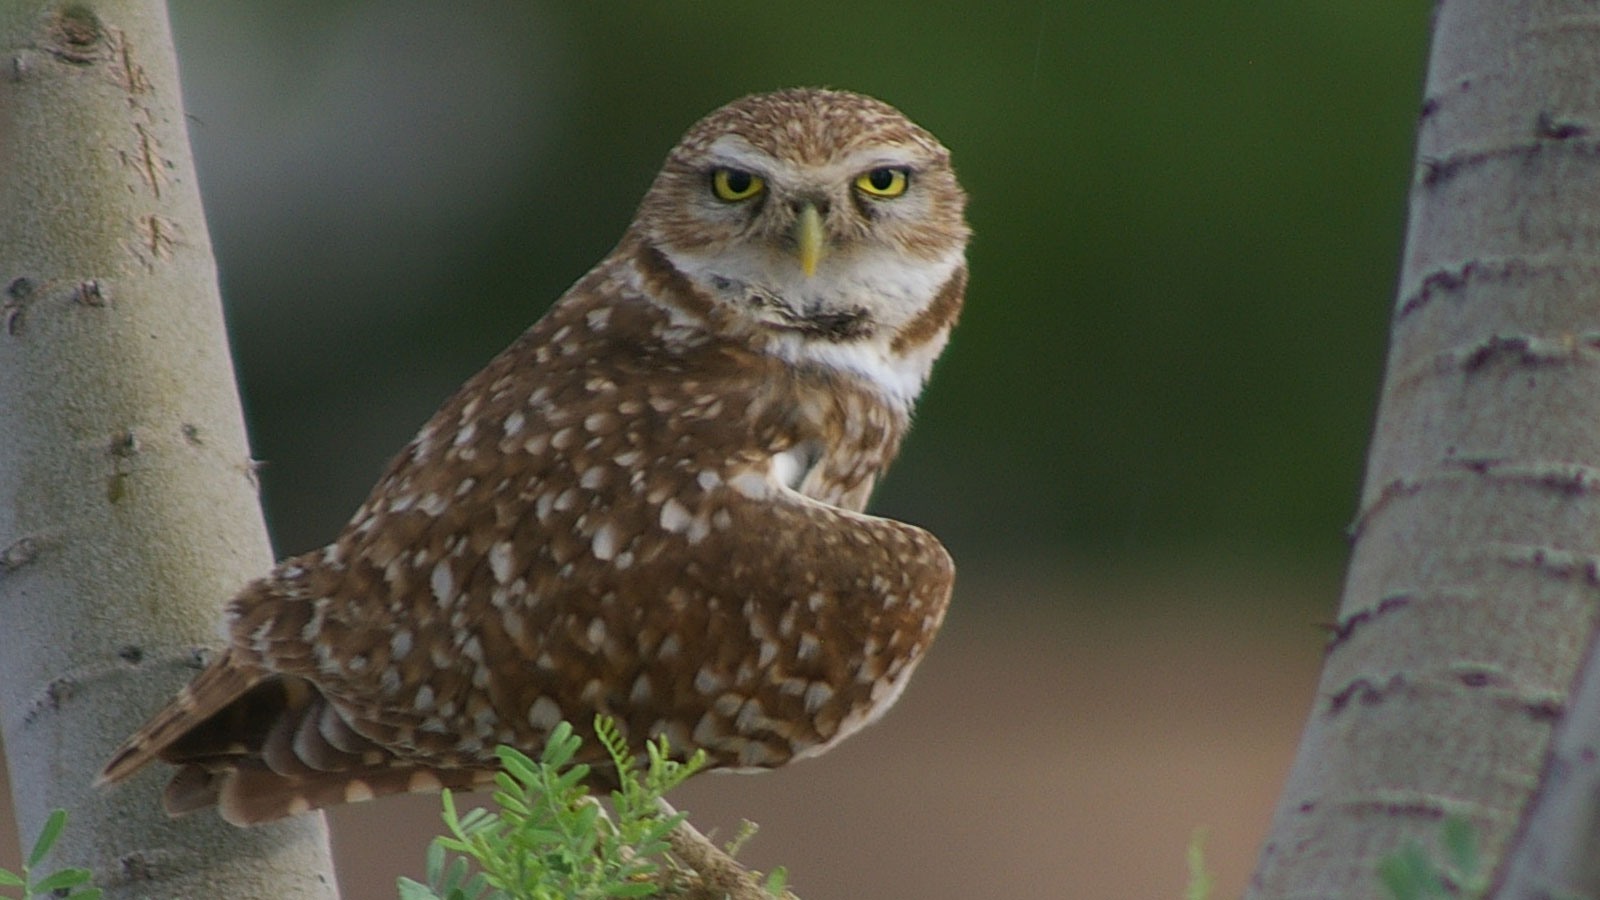 Owl (Photo: Unsplash)